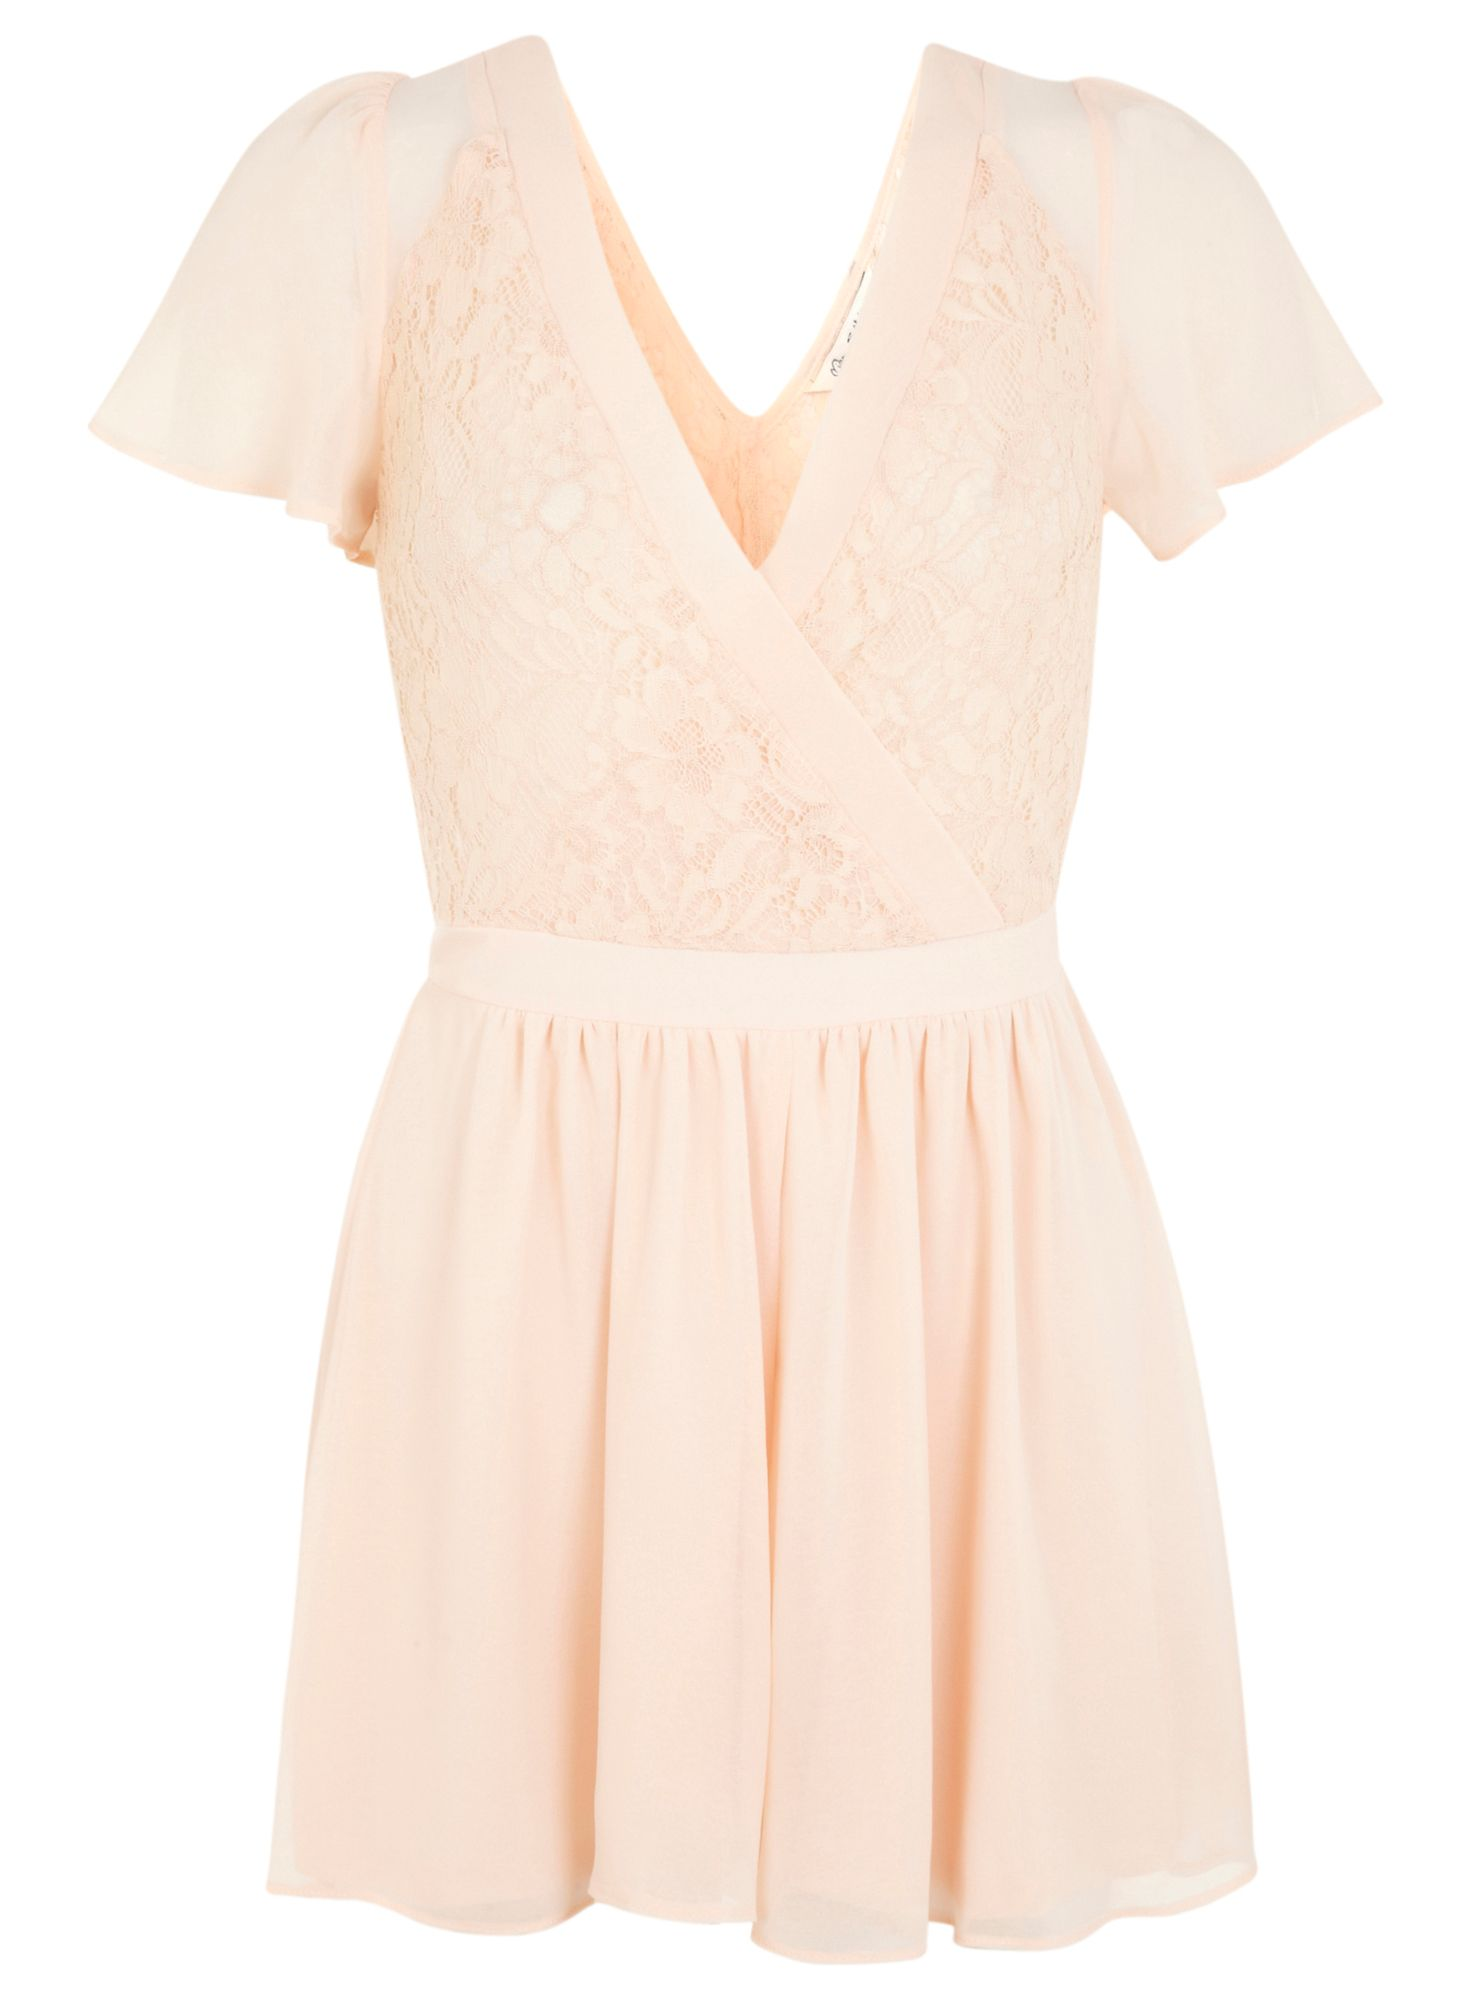 Nude lace and chiffon playsuit